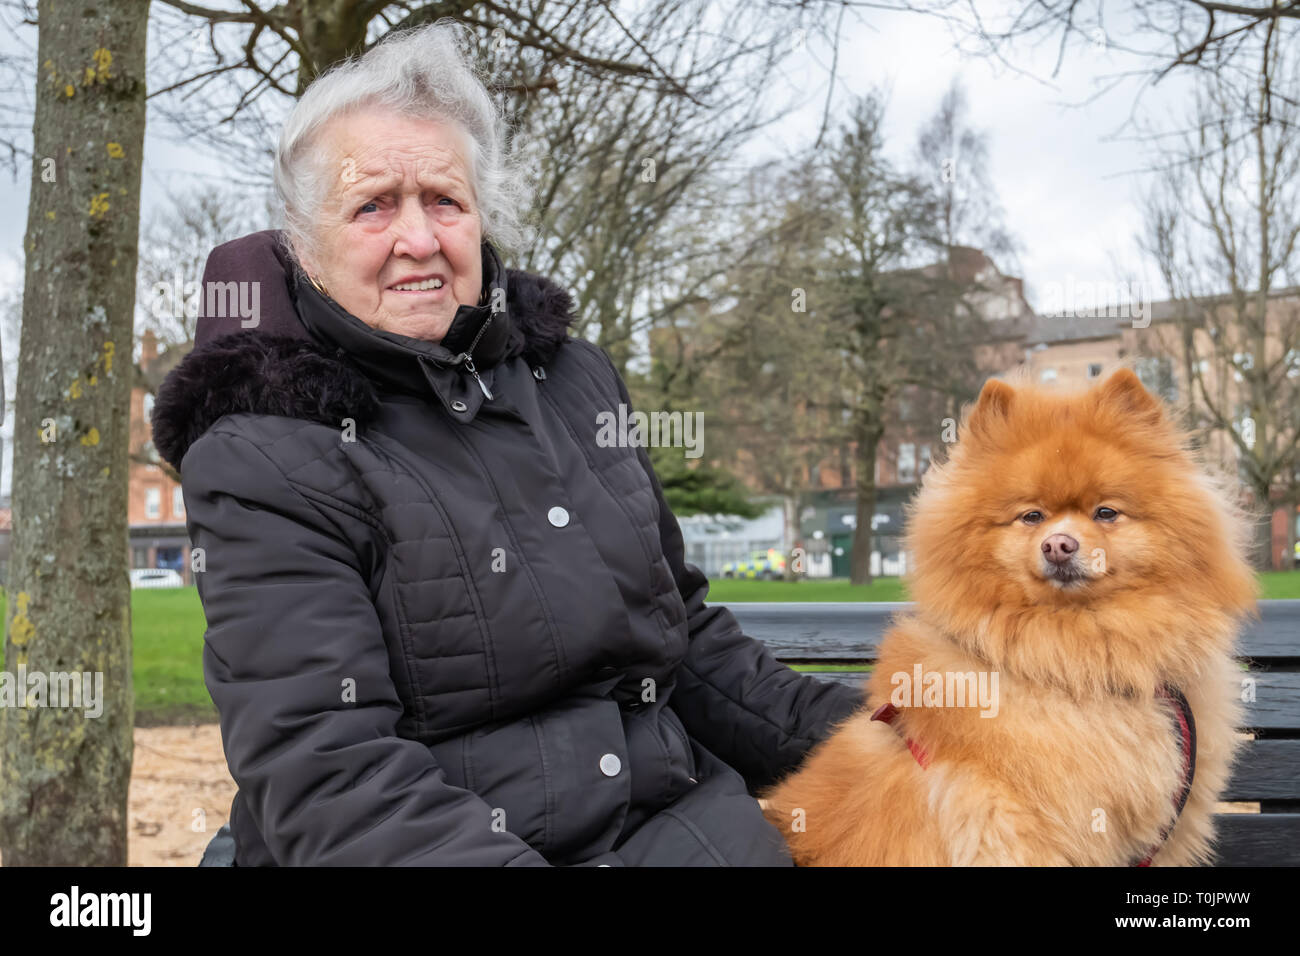 Glasgow, Scotland, UK. 20th March, 2019. UK Weather. A female dog owner sitting on a park bench alongside her pet pomeranian dog called Alfie enjoying  the mild weather in Glasgow Green. Credit: Skully/Alamy Live News - Stock Image